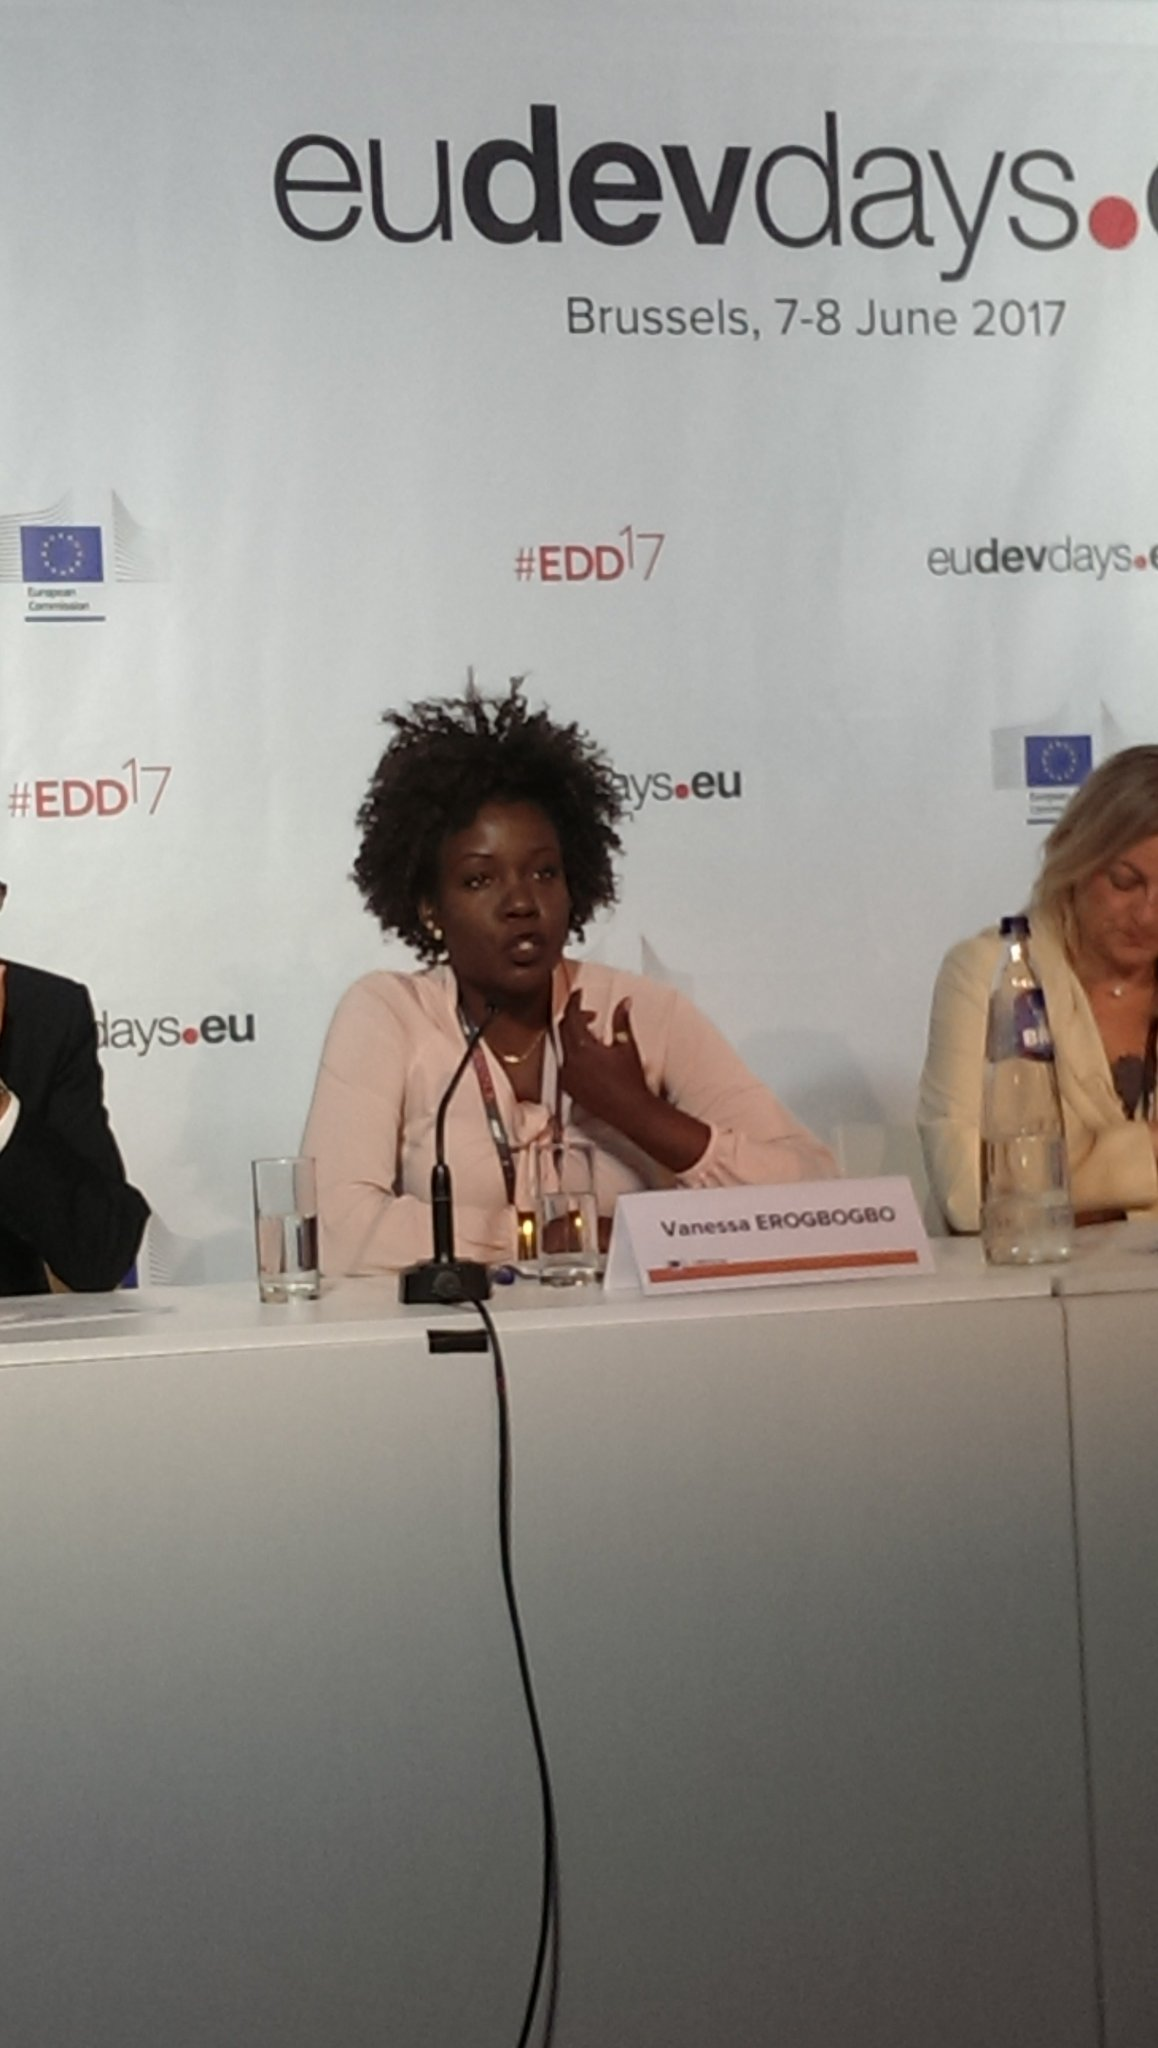 Investment, comprehensive action needed for #women's profitable participation in the economy - @verogbogbo at #EDD17 on Women #Entrepreneurs https://t.co/swHgTfTeg9